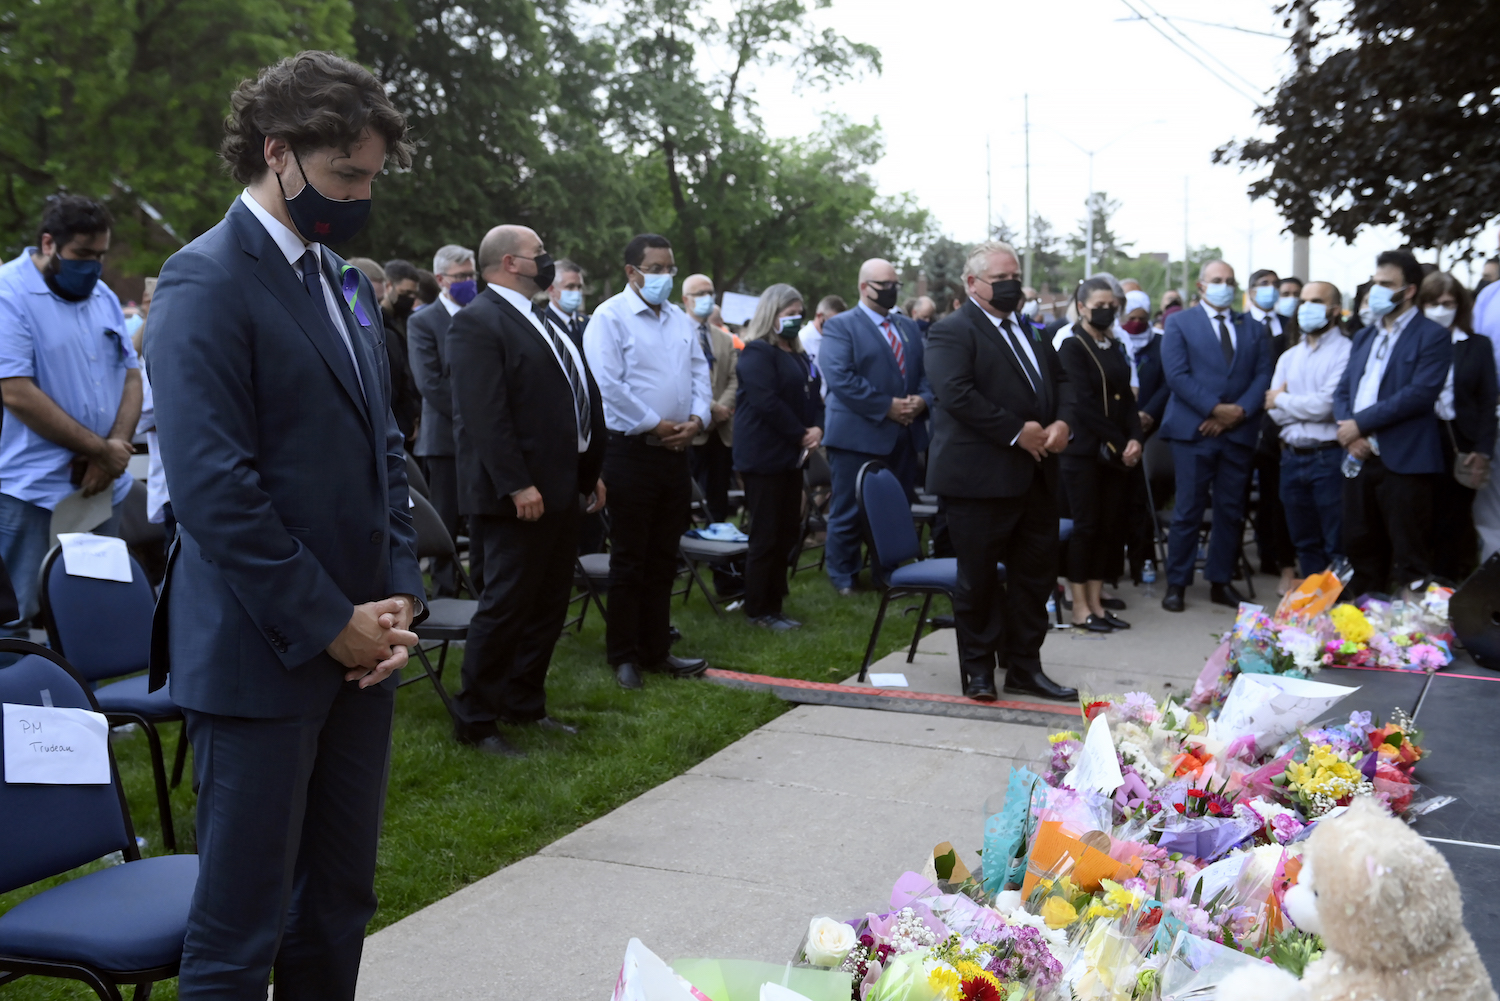 Prime Minister Justin Trudeau and Ontario Premier Doug Ford attend a vigil for the Afzaal-Salman family.